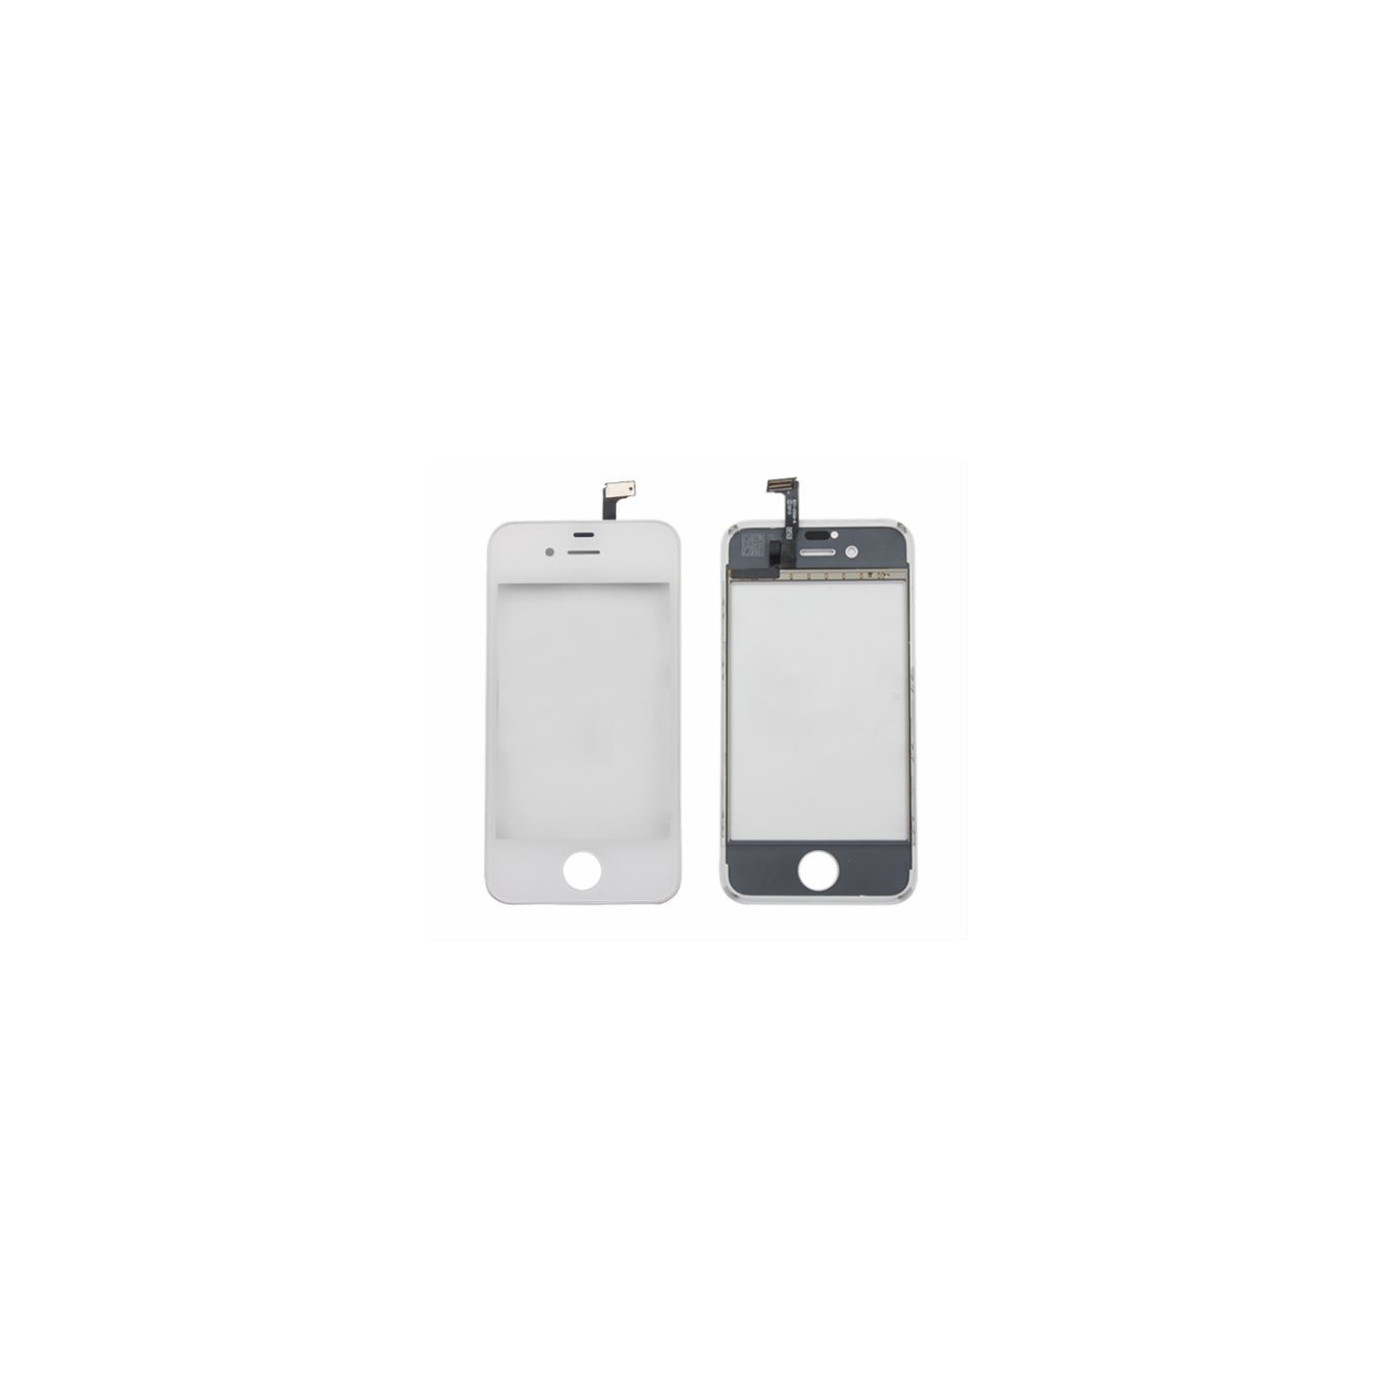 Vetro Touch screen per apple iphone 4 - 4s schermo bianco biadesivo